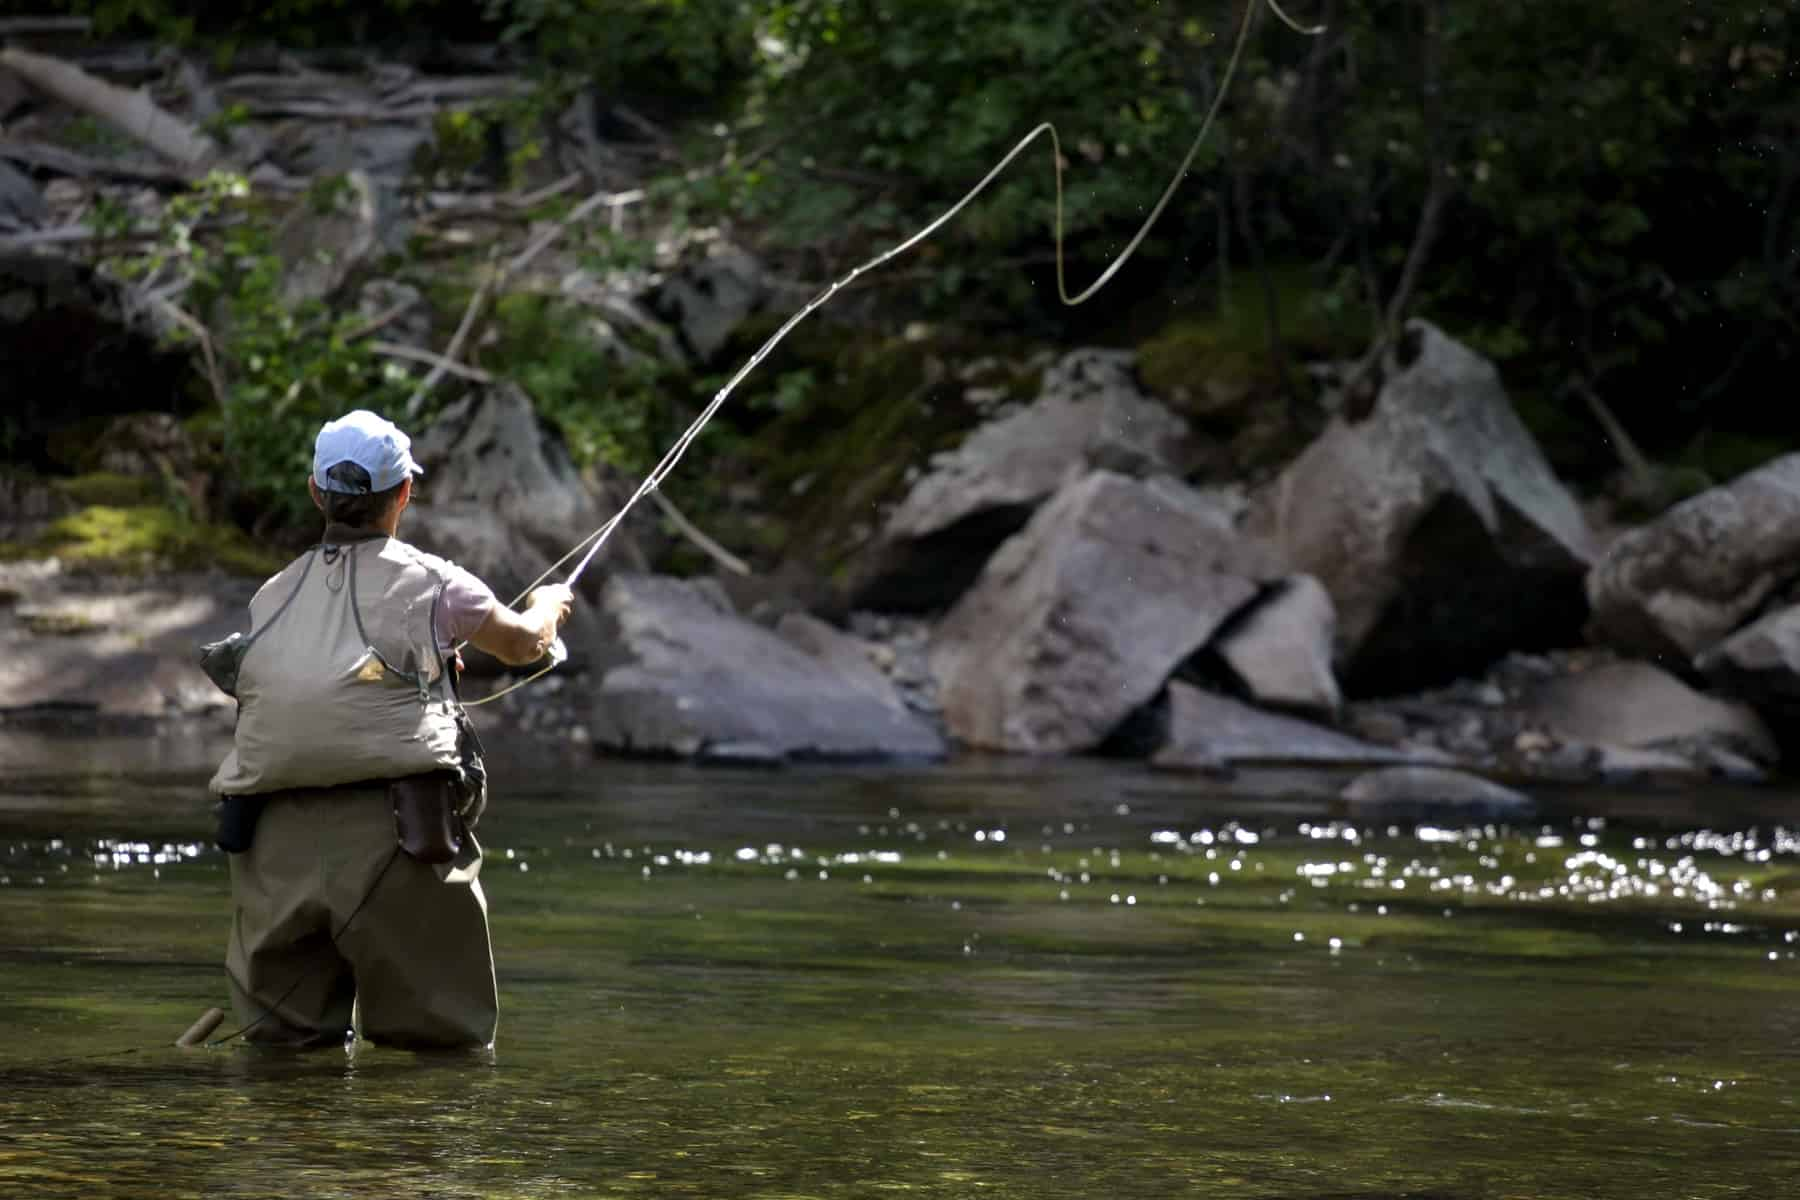 H&H Fly Fishing (@hh_flyfishing) • Instagram photos and videos